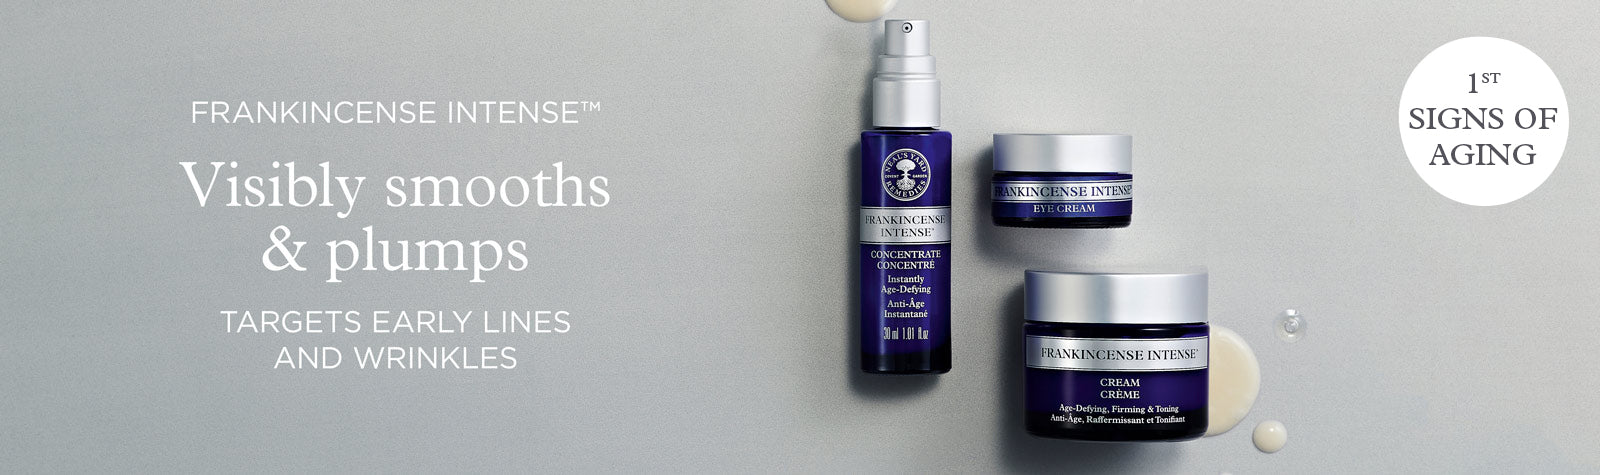 Frankincense Intense Collection - organic anti-aging wrinkle cream